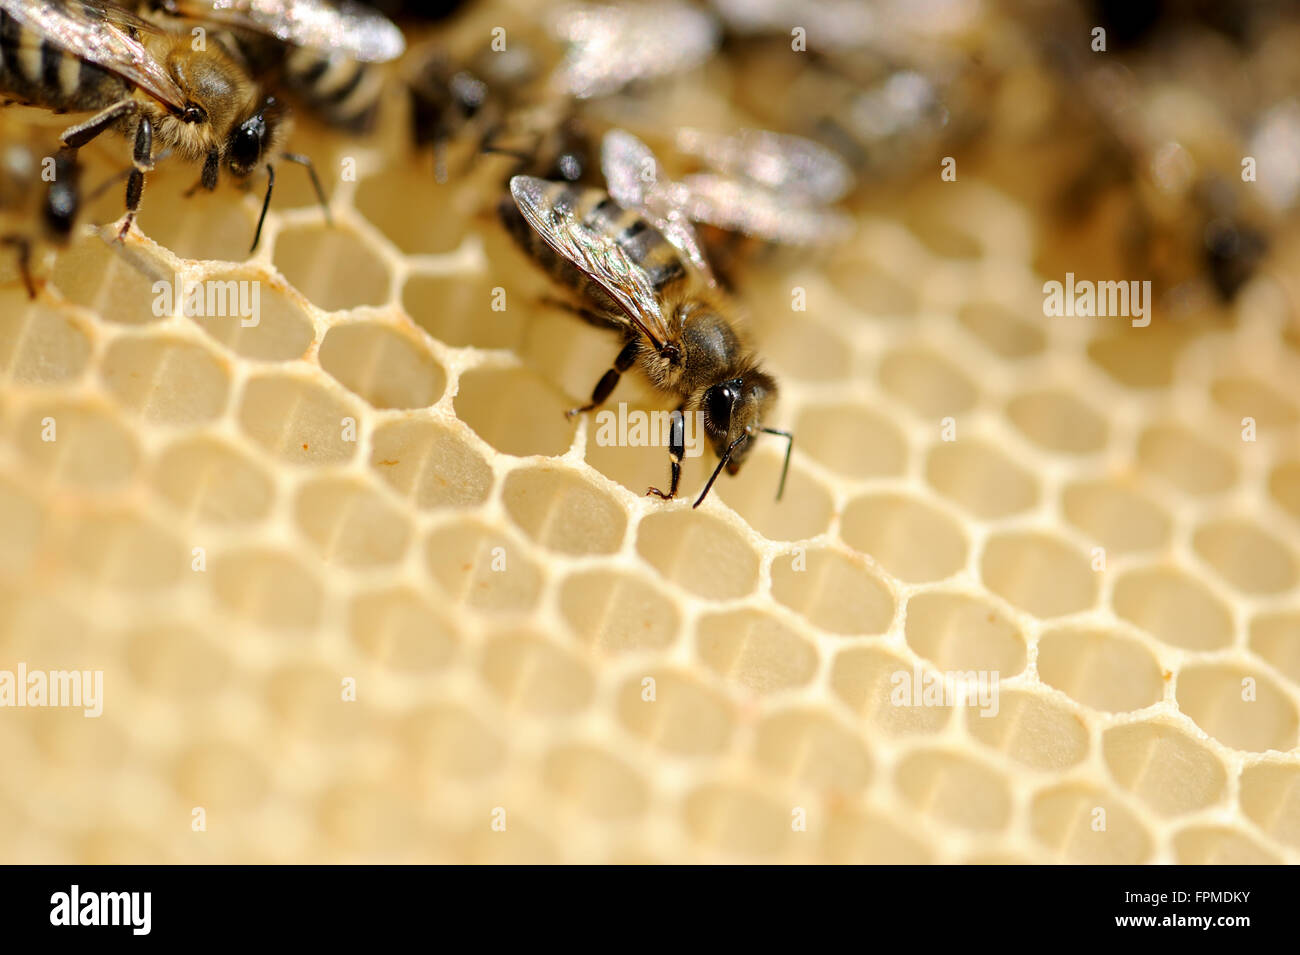 Close up view of the working bees on honeycells - Stock Image